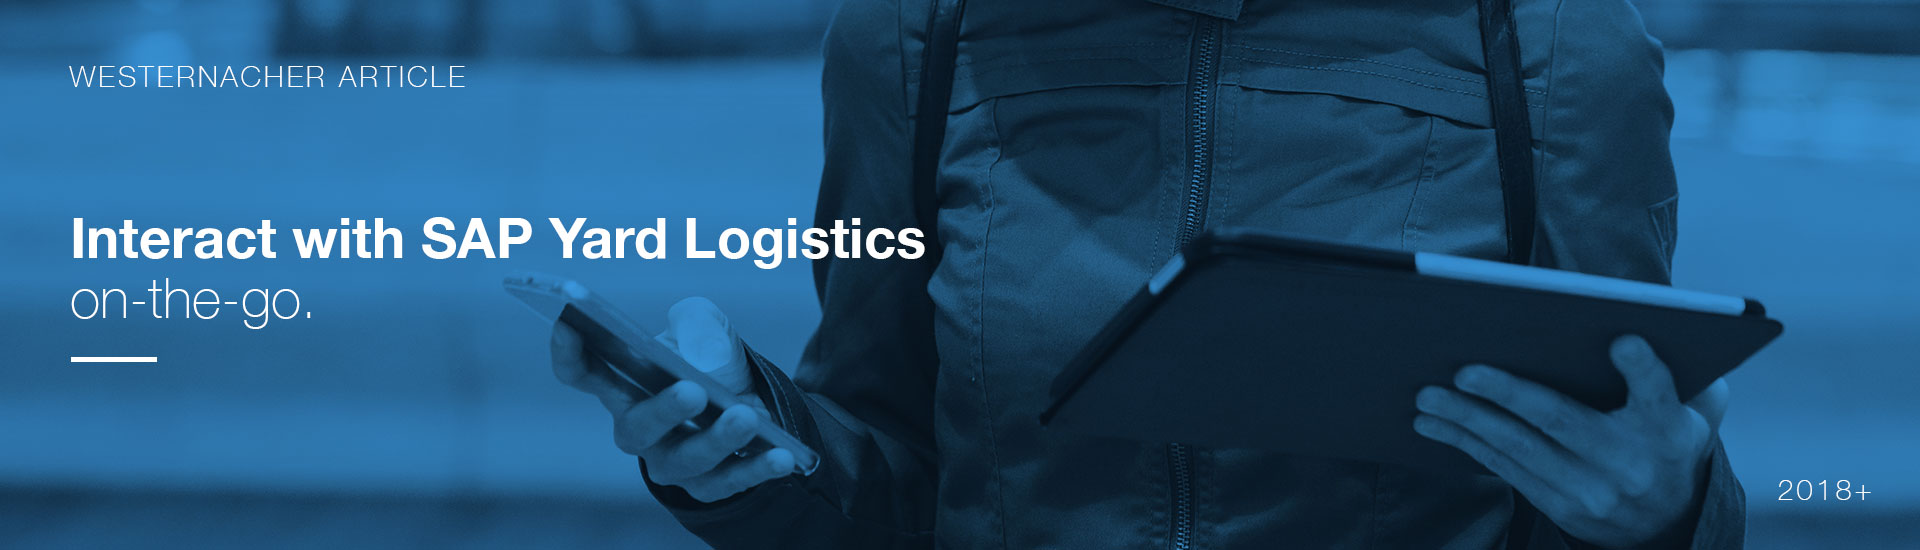 Mobile Communication with SAP Yard Logistics | westernacher-consulting.com